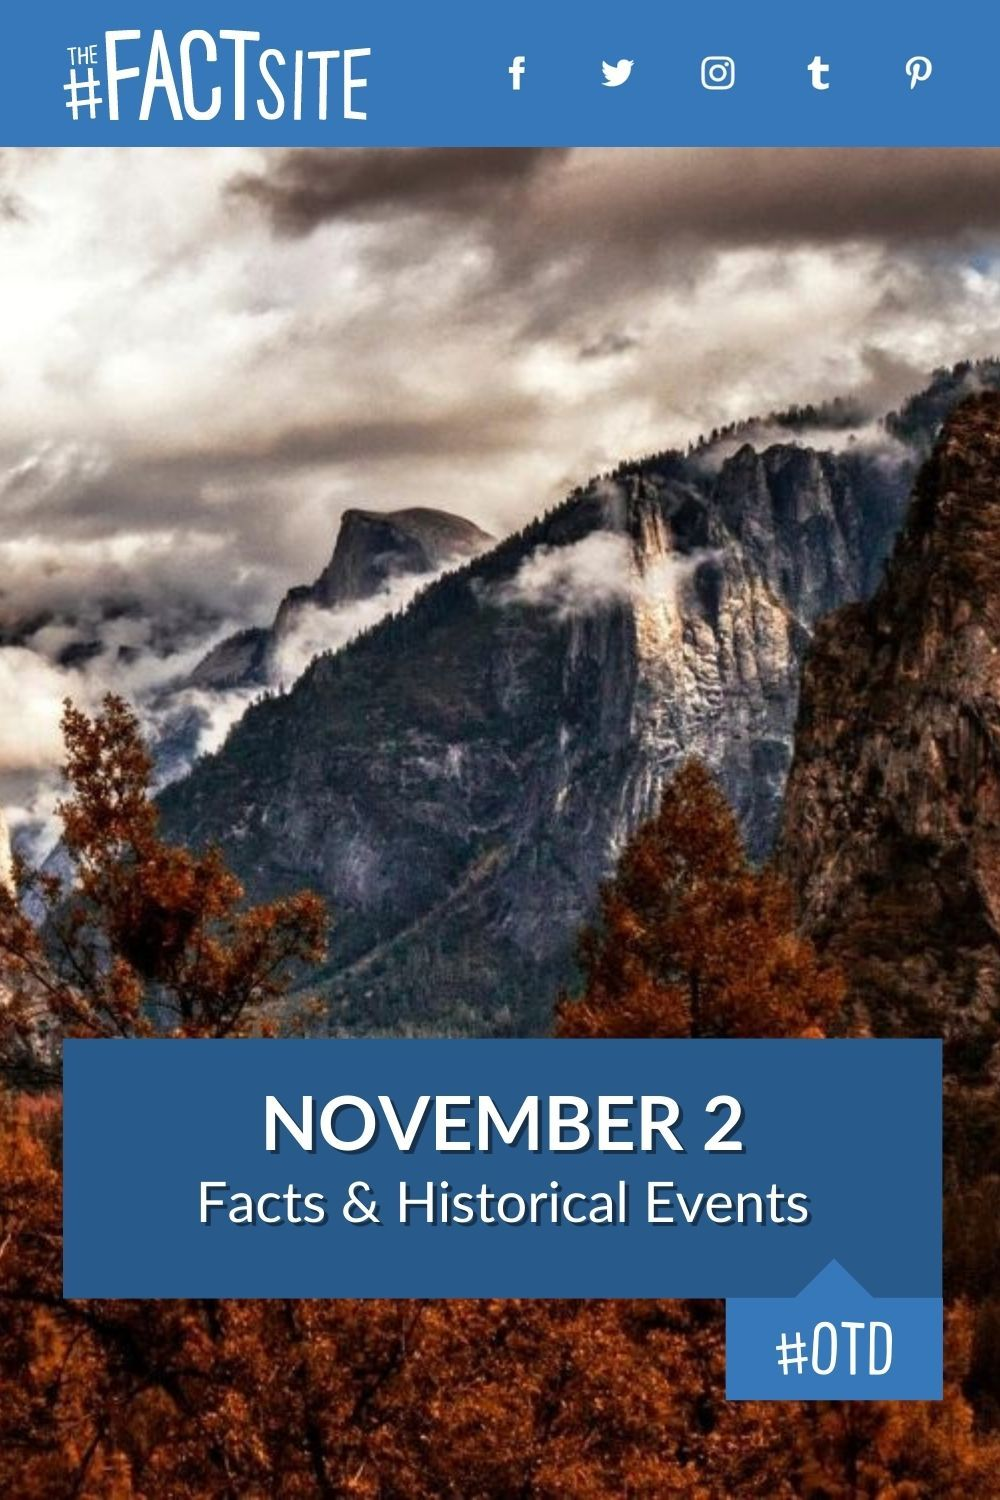 Facts & Historic Events That Happened on November 2